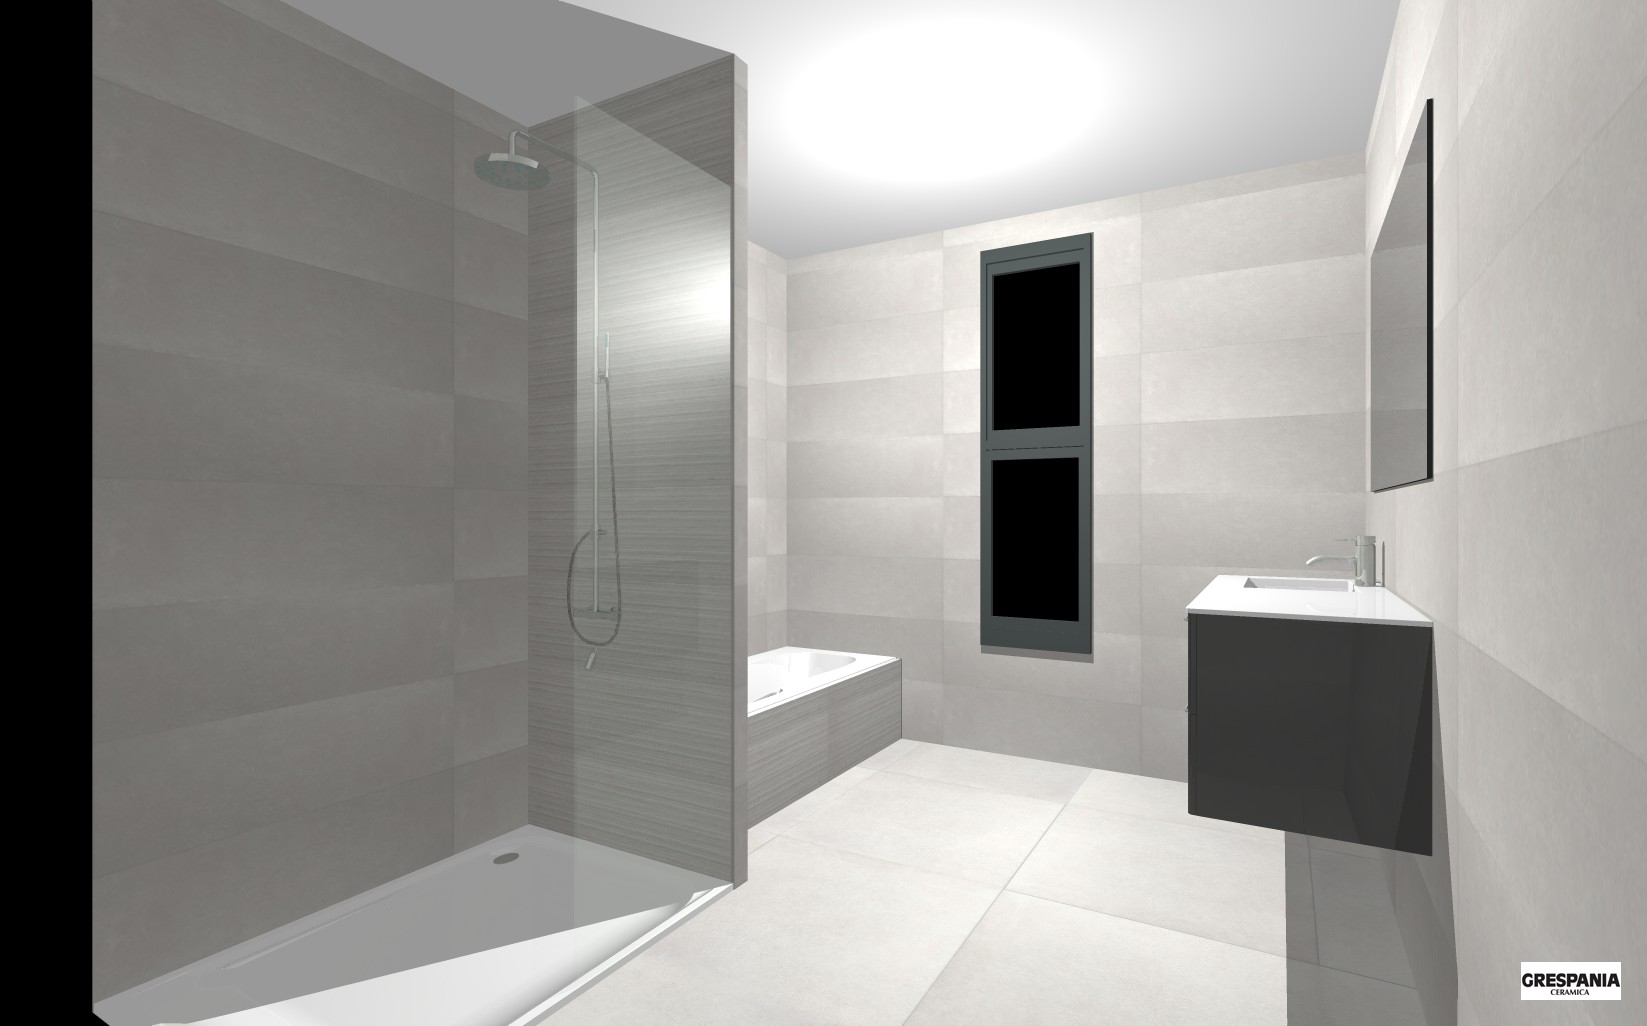 Vente de carrelage et fa ence de qualit jacou le for Salle de bain grand carrelage